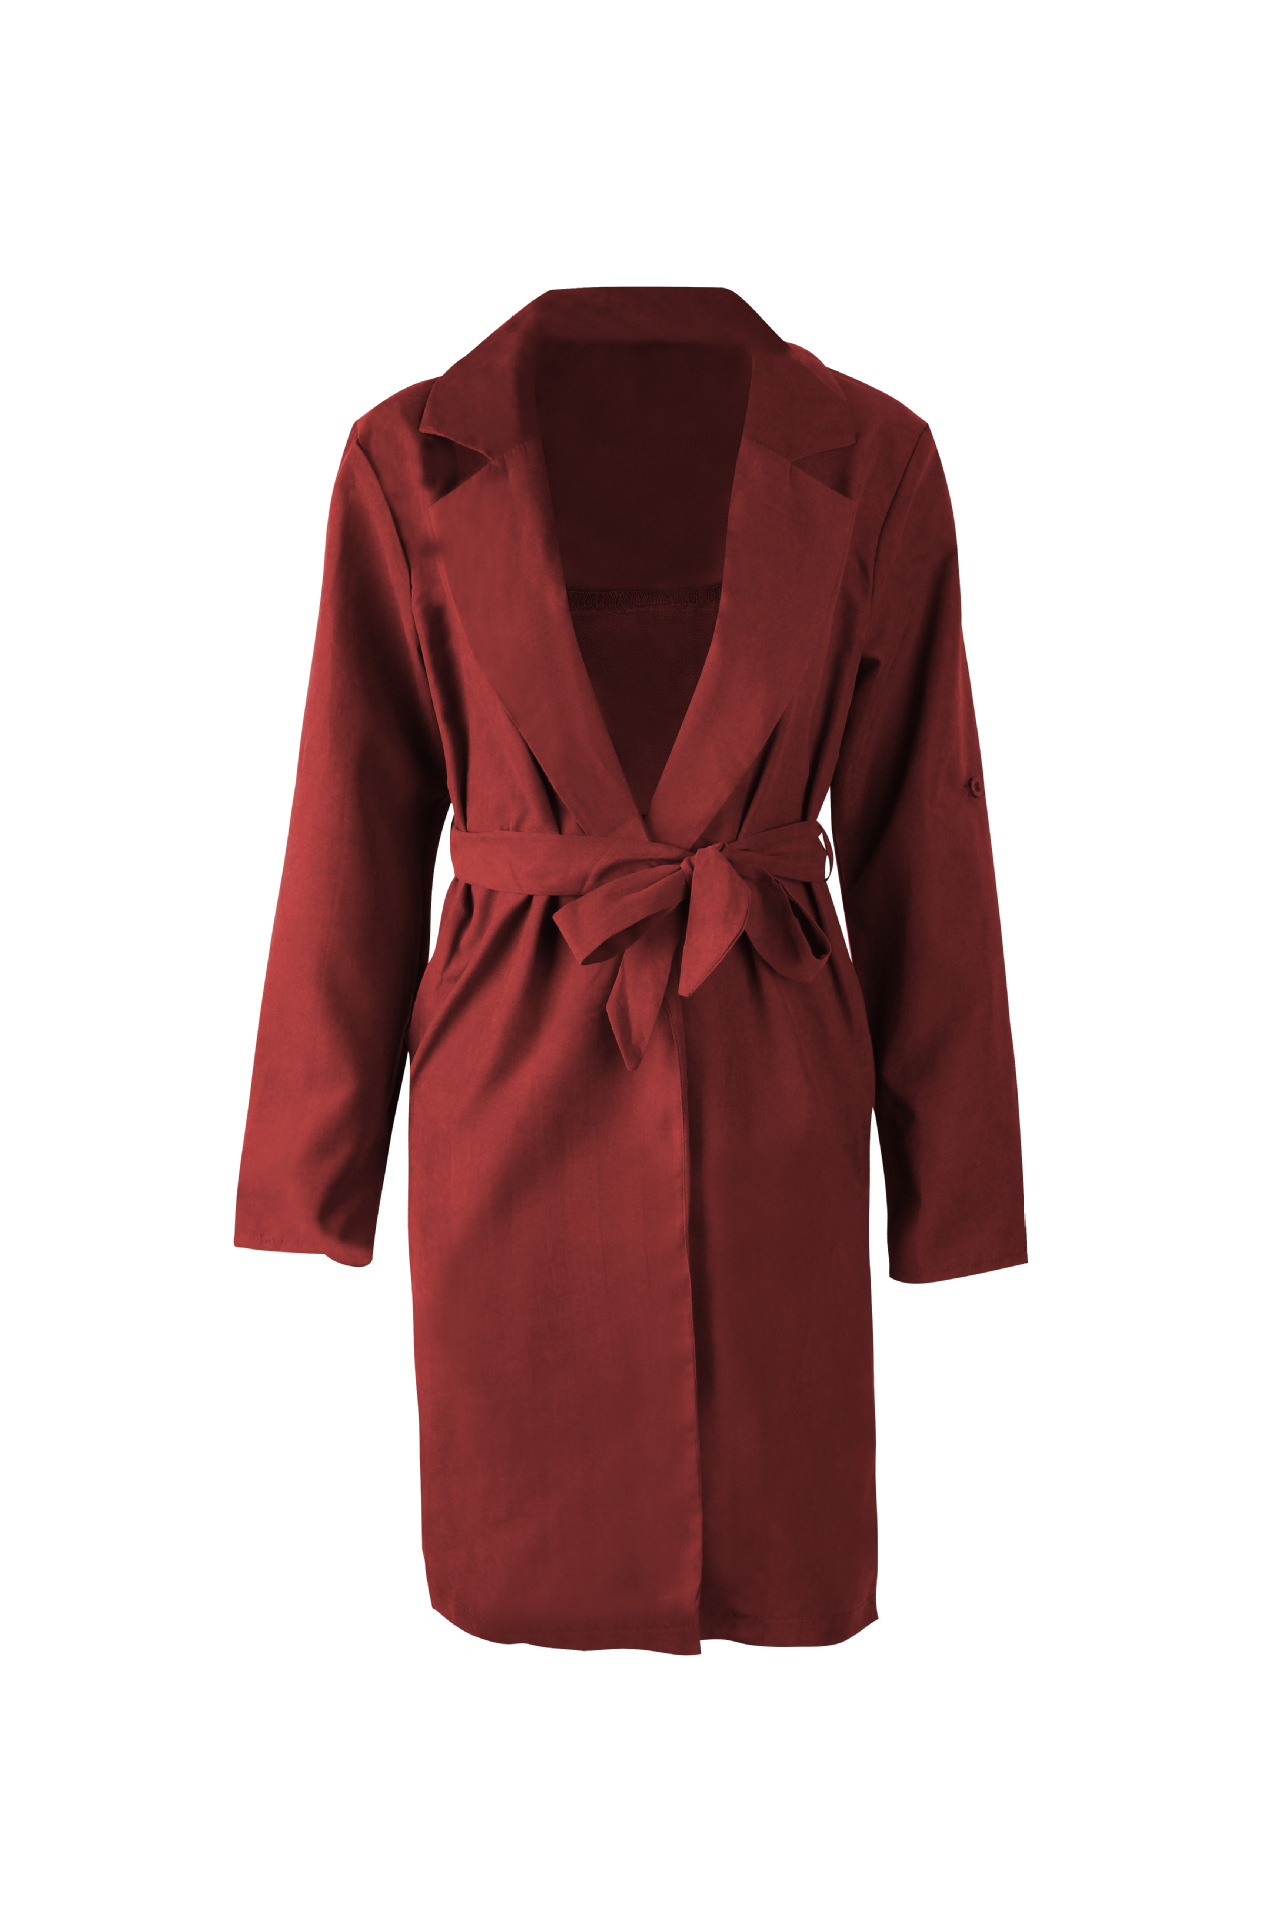 Women Trench Coat Autumn Turn down Collar Long Sleeve Side Split Belted Casual Long Jacket Outerwear crimson